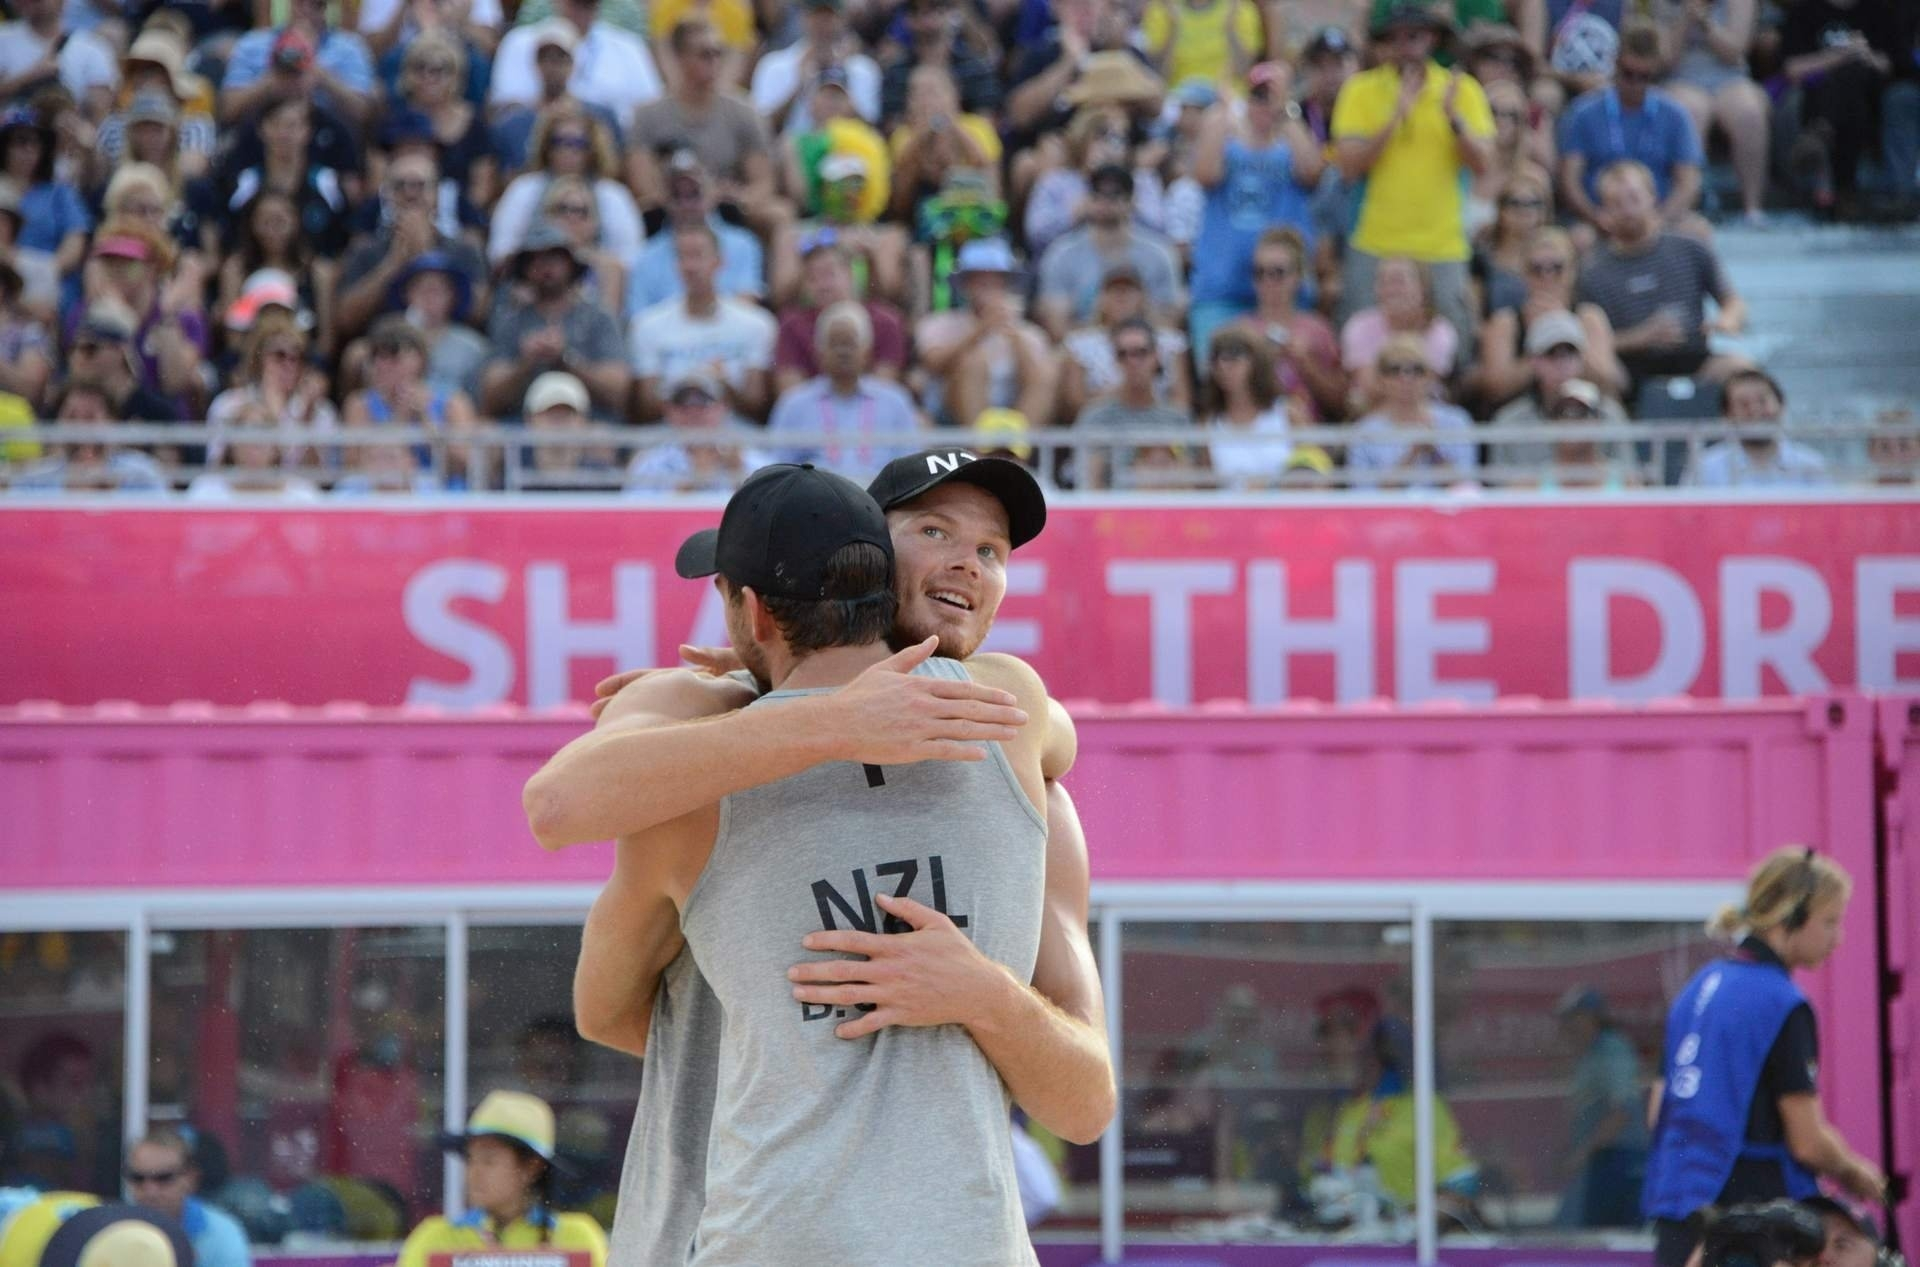 Sam (facing the camera) and Ben celebrate winning bronze at the Commonwealth Games. Photocredit: Beach Major Series